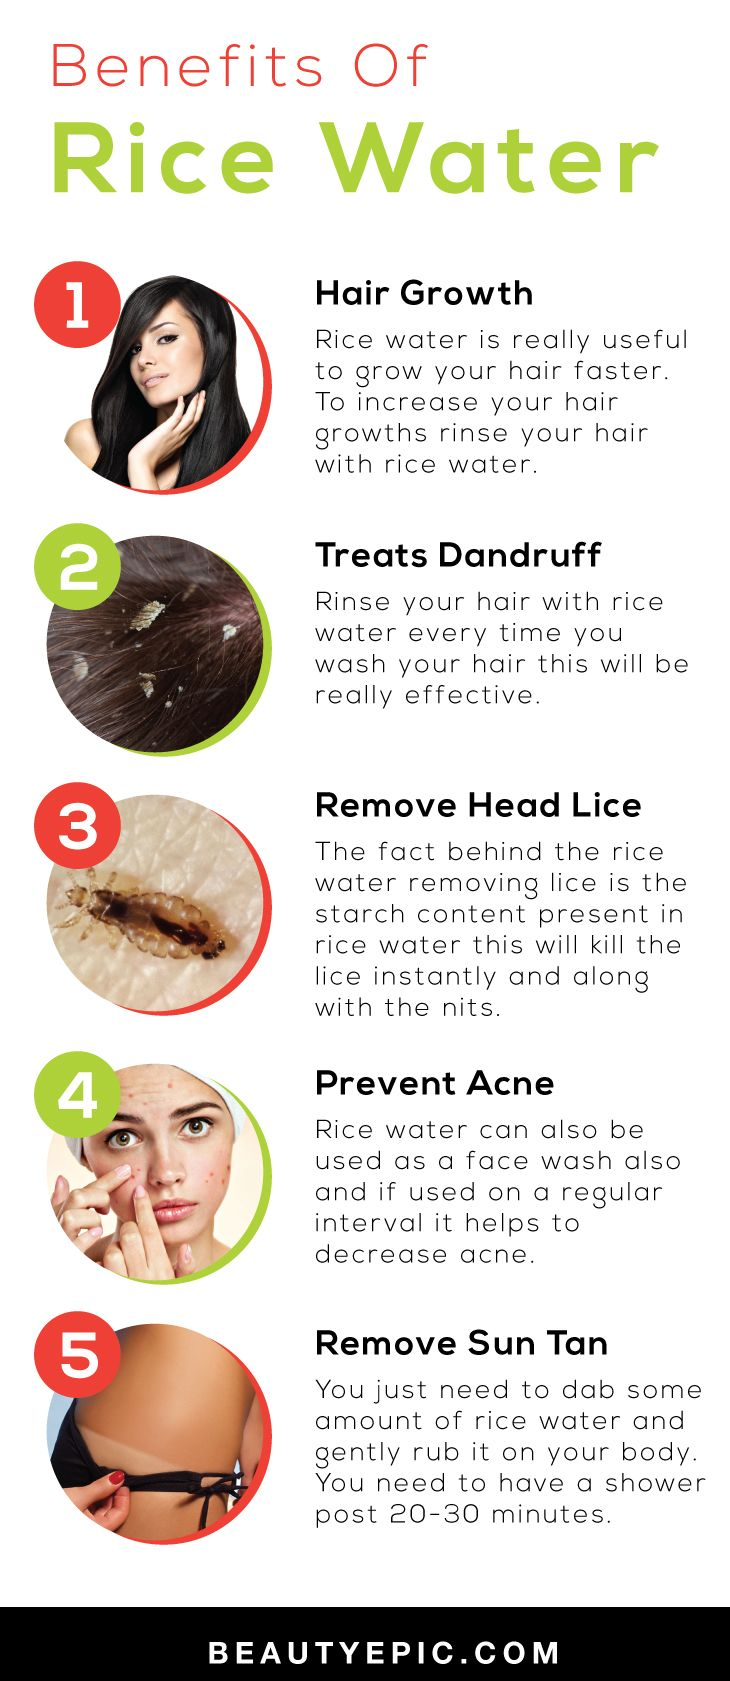 Benefits Of Rice Water for Skin, Hair and Health